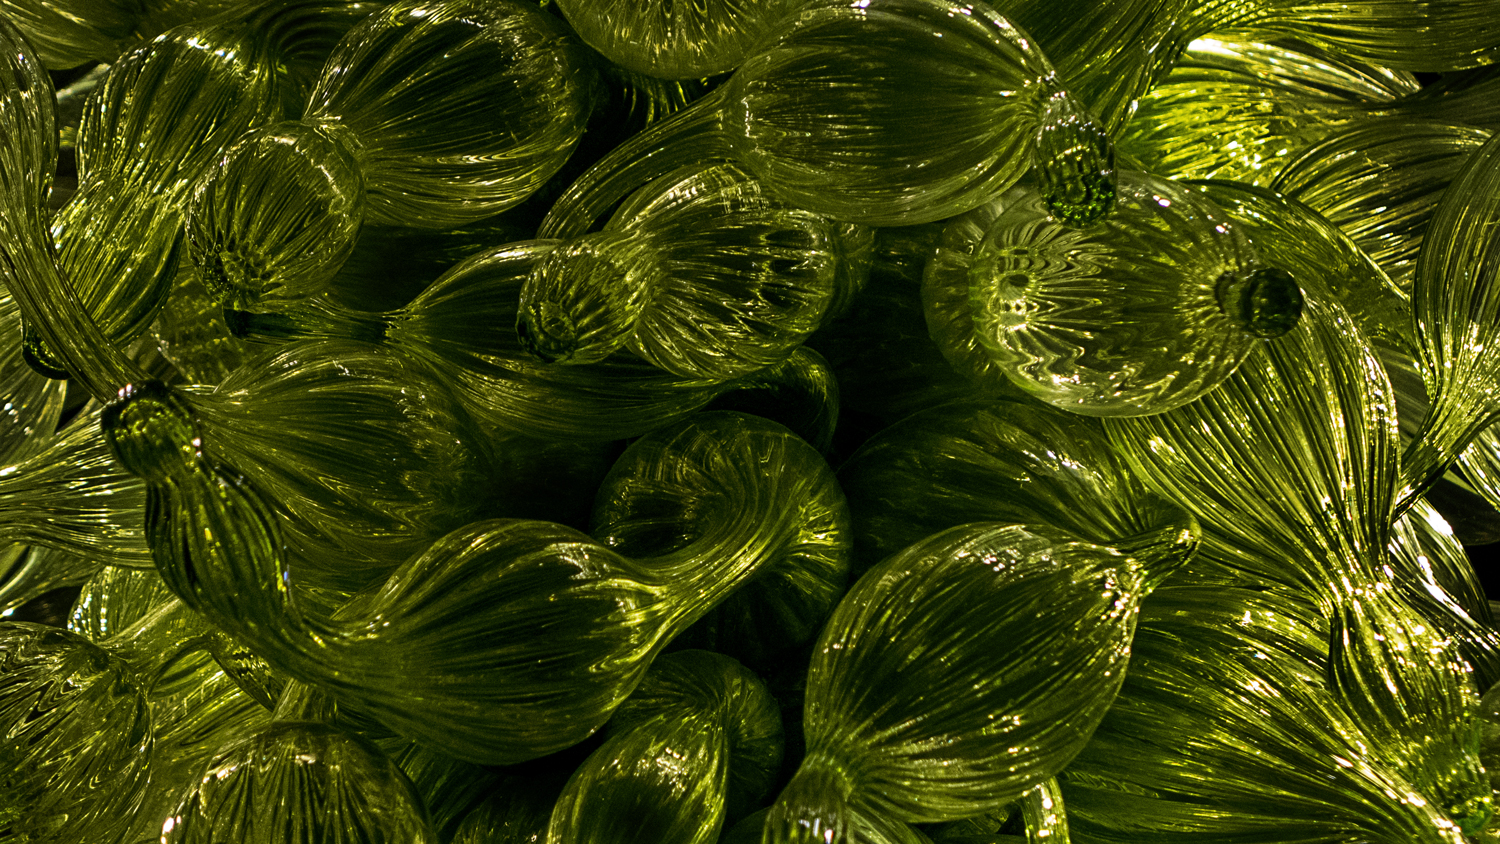 VicHuber-Website-ChihulyMuseum-L1240233.jpg